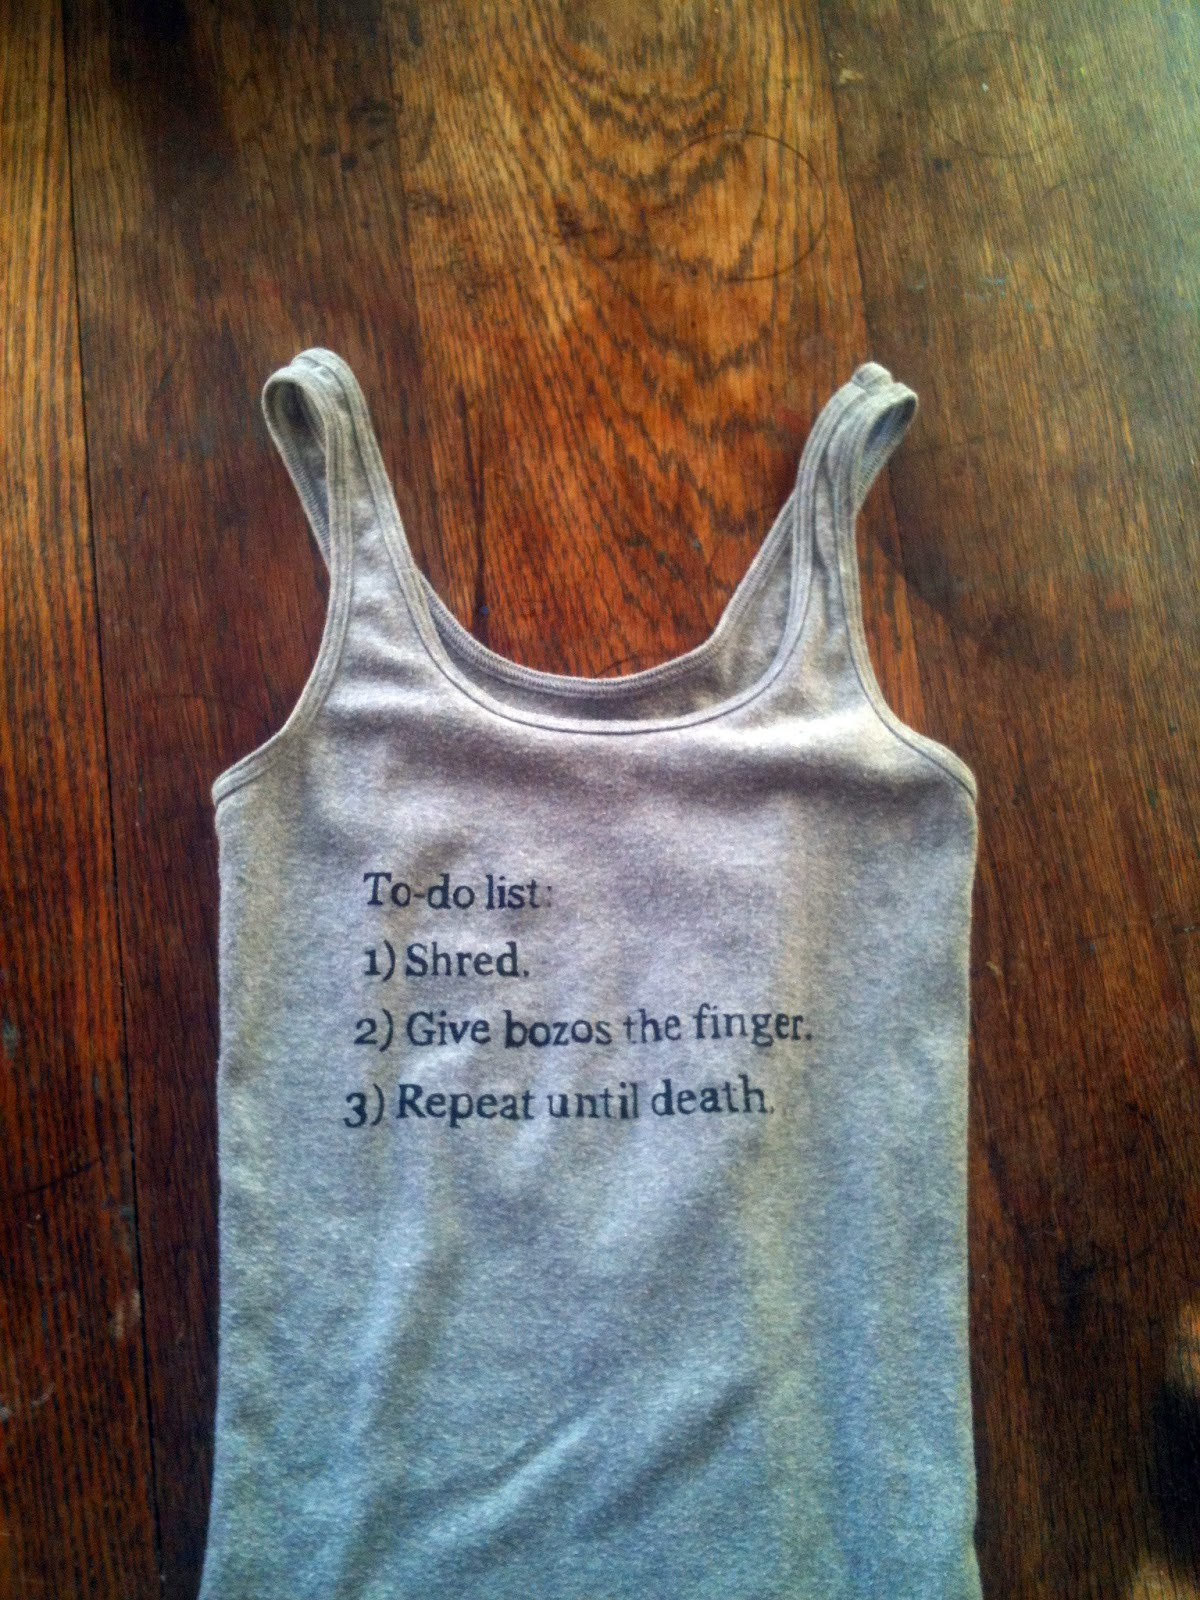 """Lindy West tweet on gray tank top: """"To-do list: 1) Shred 2) Give bozos the finger 3) Repeat until death."""